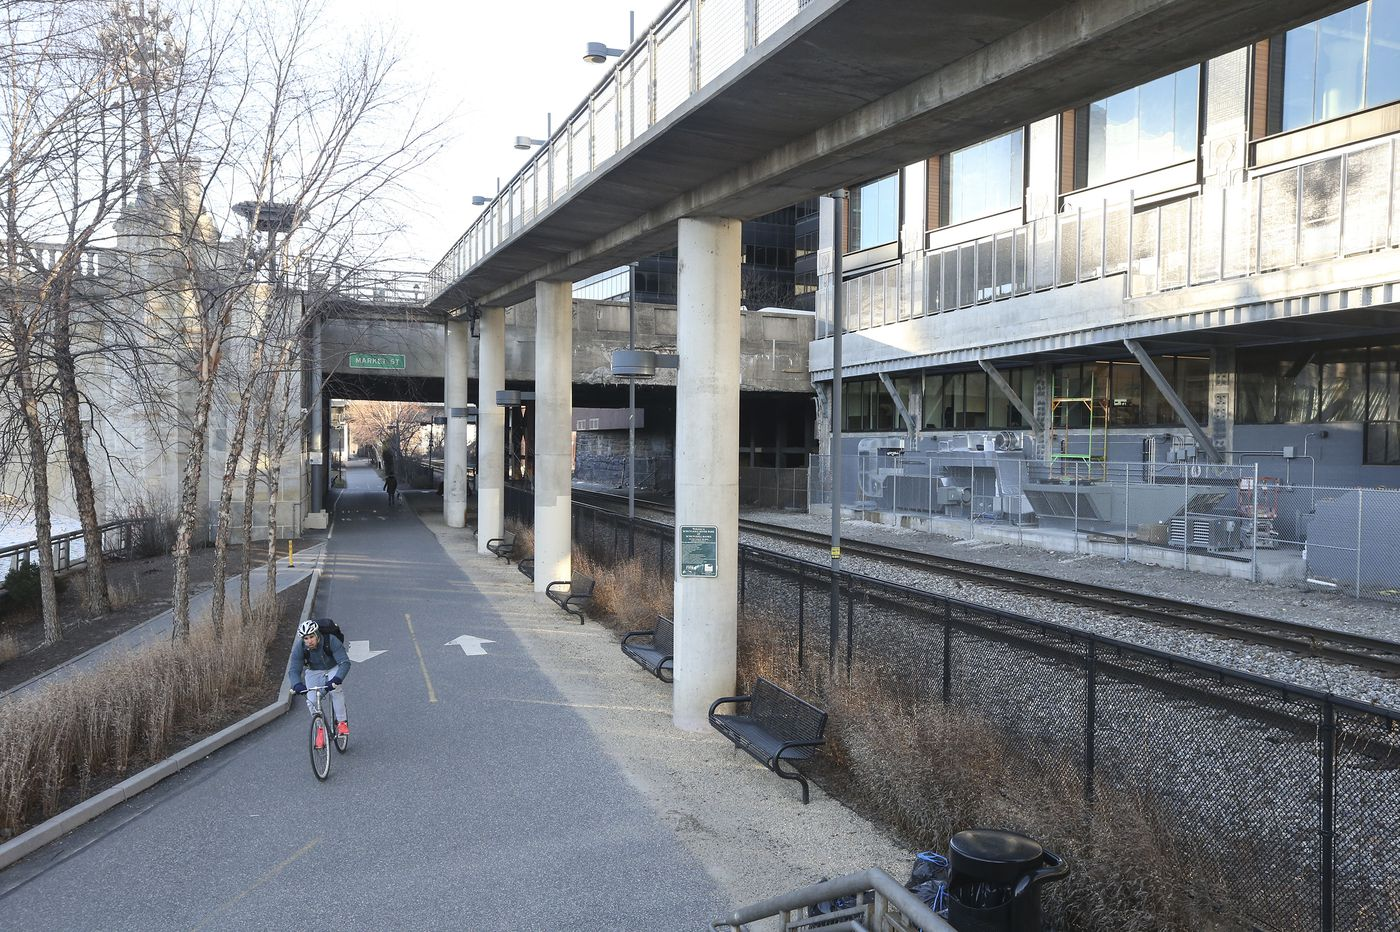 Seeking peace and quiet on the Schuylkill River Trail, finding noisy fans instead | Inga Saffron